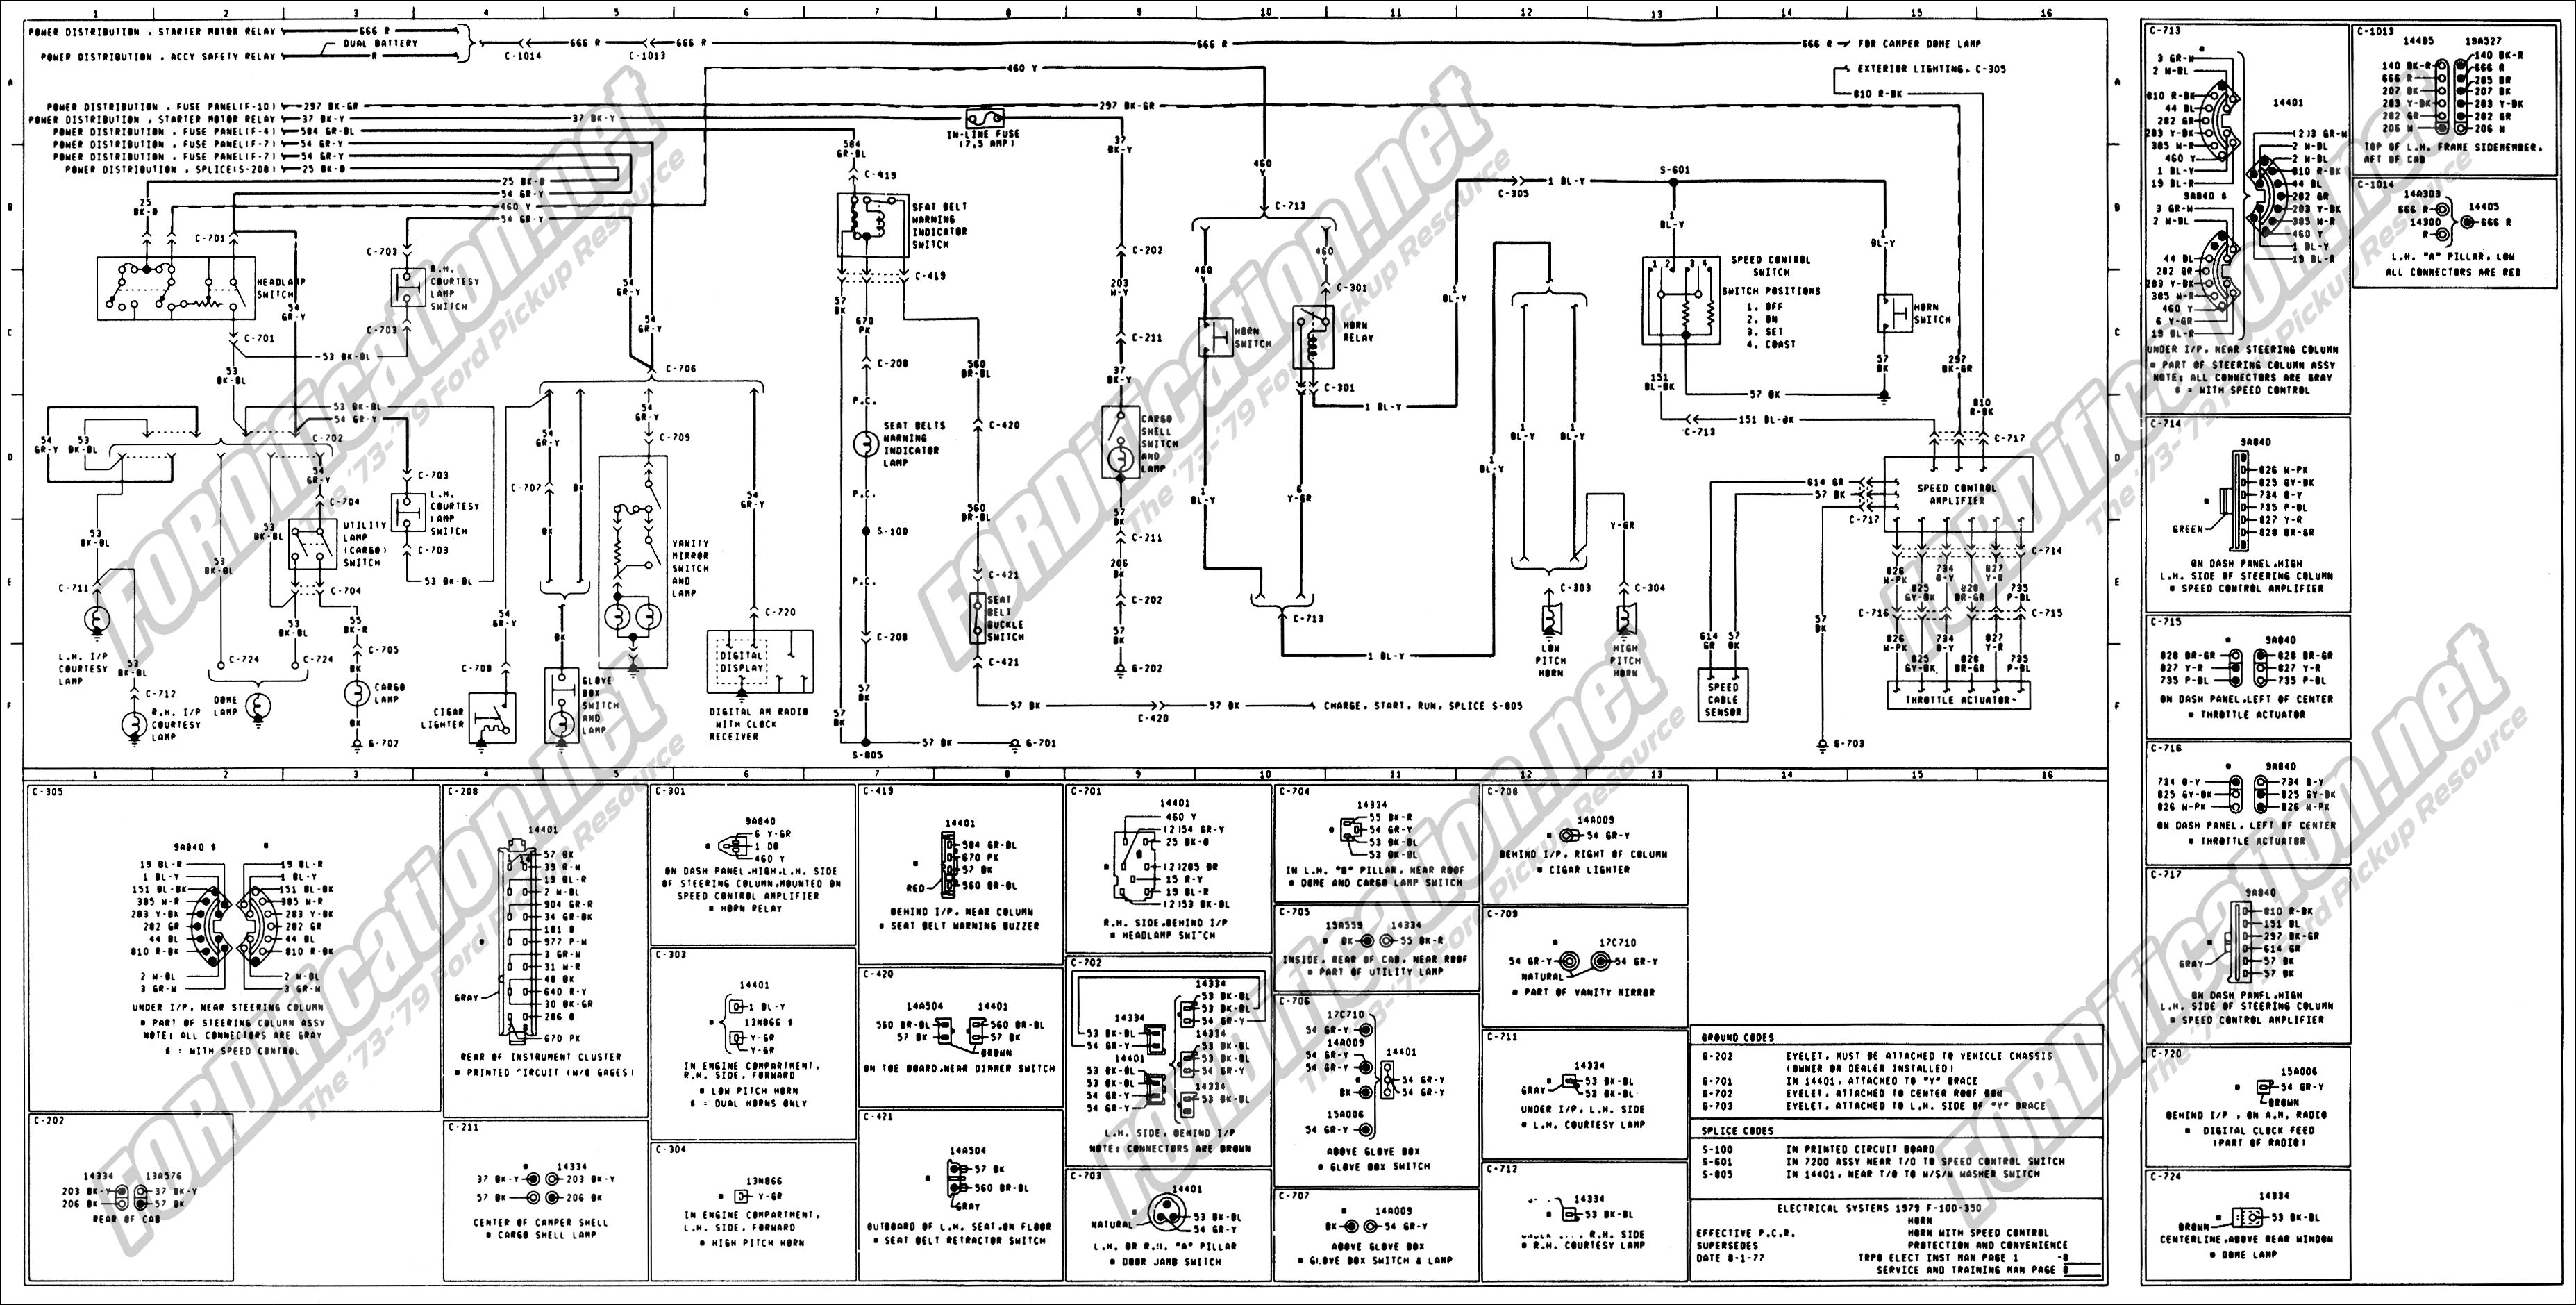 wiring_79master_8of9 1973 1979 ford truck wiring diagrams & schematics fordification net 2004 ford f250 wiring diagram at soozxer.org